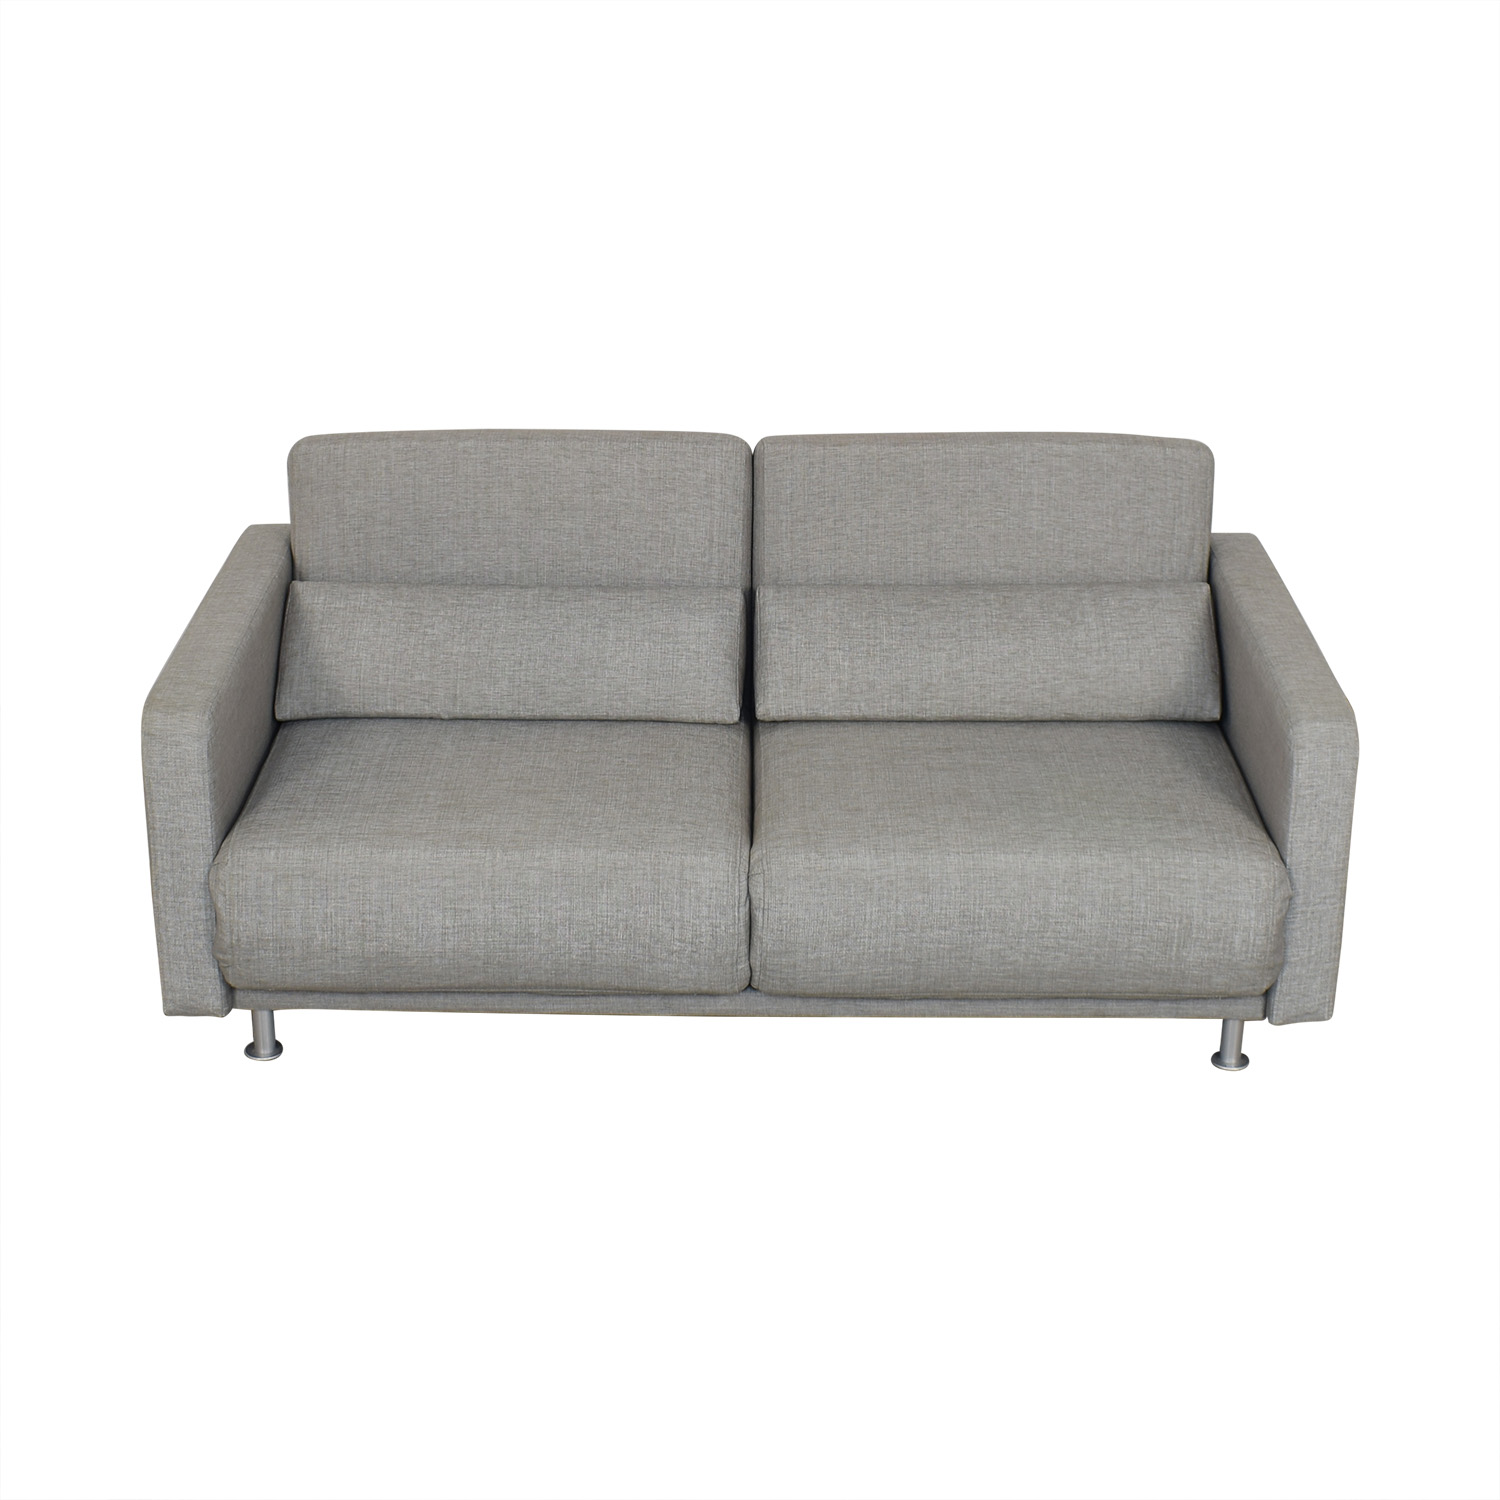 BoConcept Melo Two / Sofa Beds